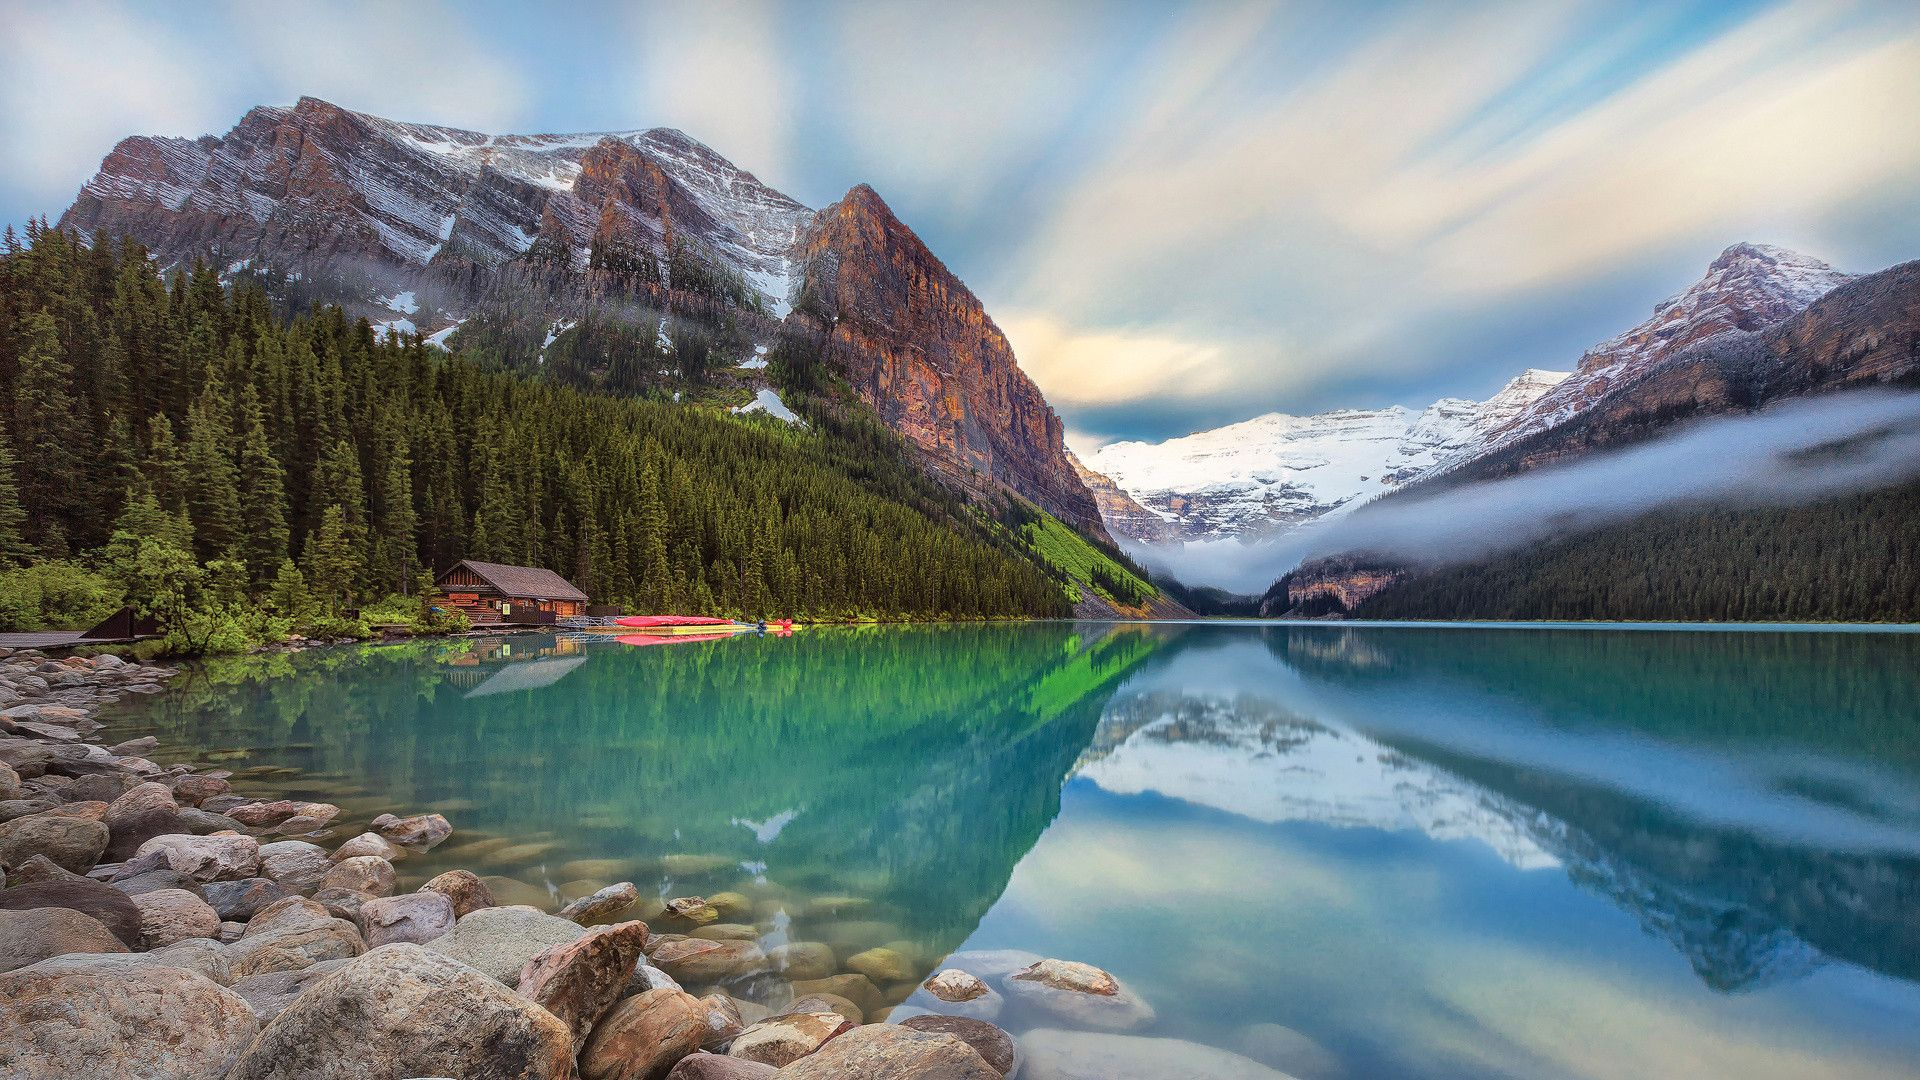 lake louise canada wallpaper | nature | pinterest